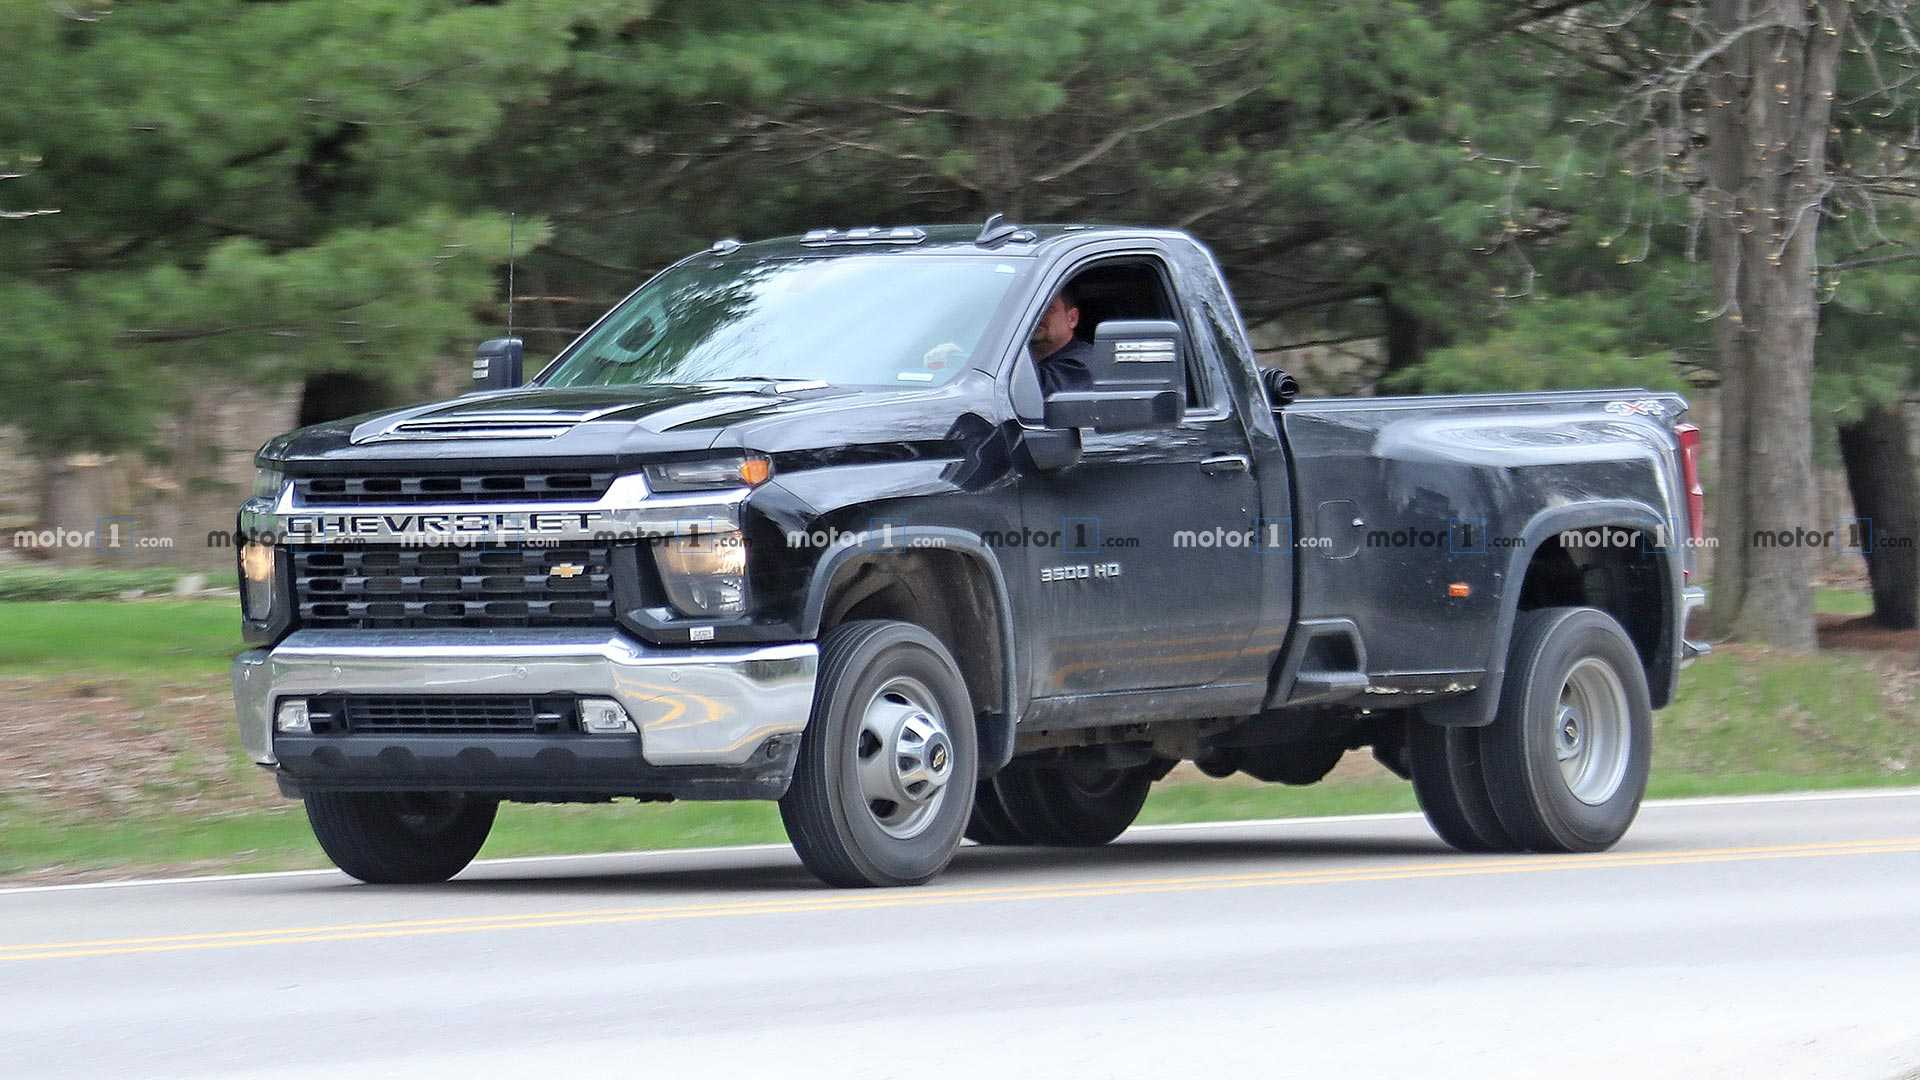 2020 Chevy Silverado Hd Single Cab Dually Spied Fully Undisguised